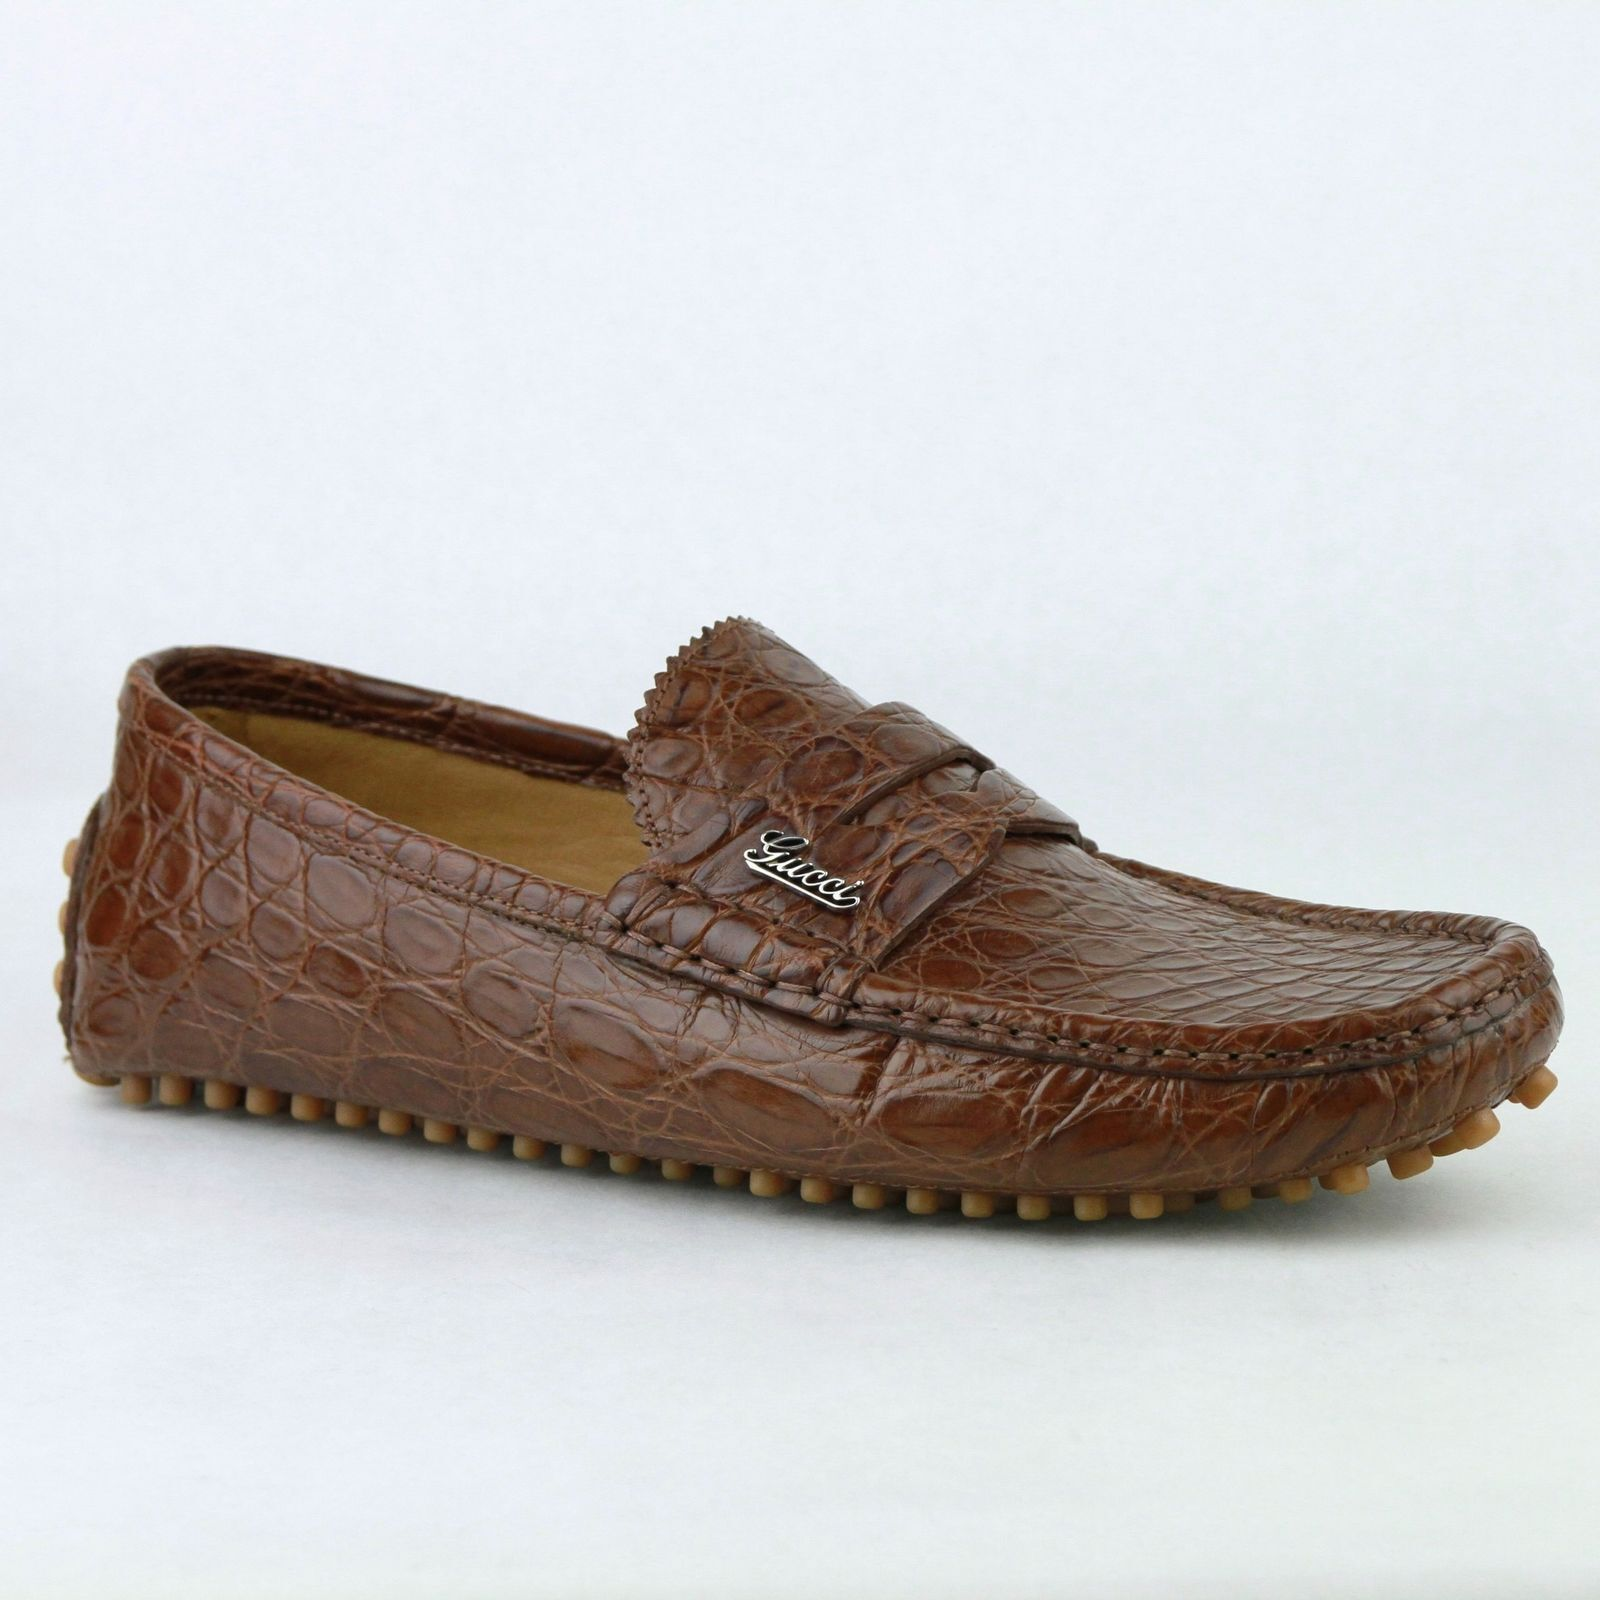 Gucci Brown Crocodile Leather Loafer Shoes wGucci Emblem 373254 2535